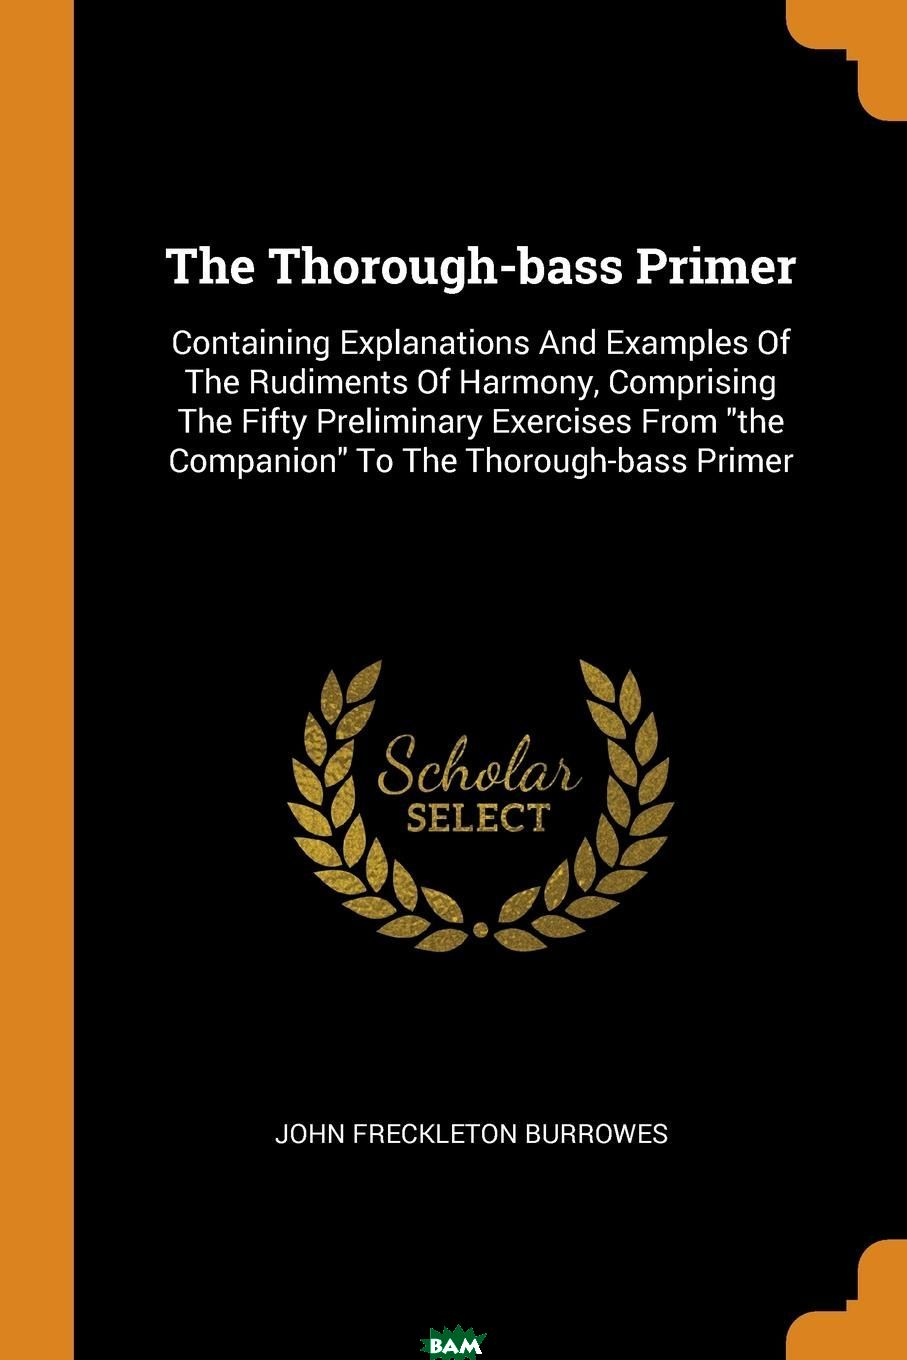 Купить The Thorough-bass Primer. Containing Explanations And Examples Of The Rudiments Of Harmony, Comprising The Fifty Preliminary Exercises From the Companion To The Thorough-bass Primer, John Freckleton Burrowes, 9780353244481